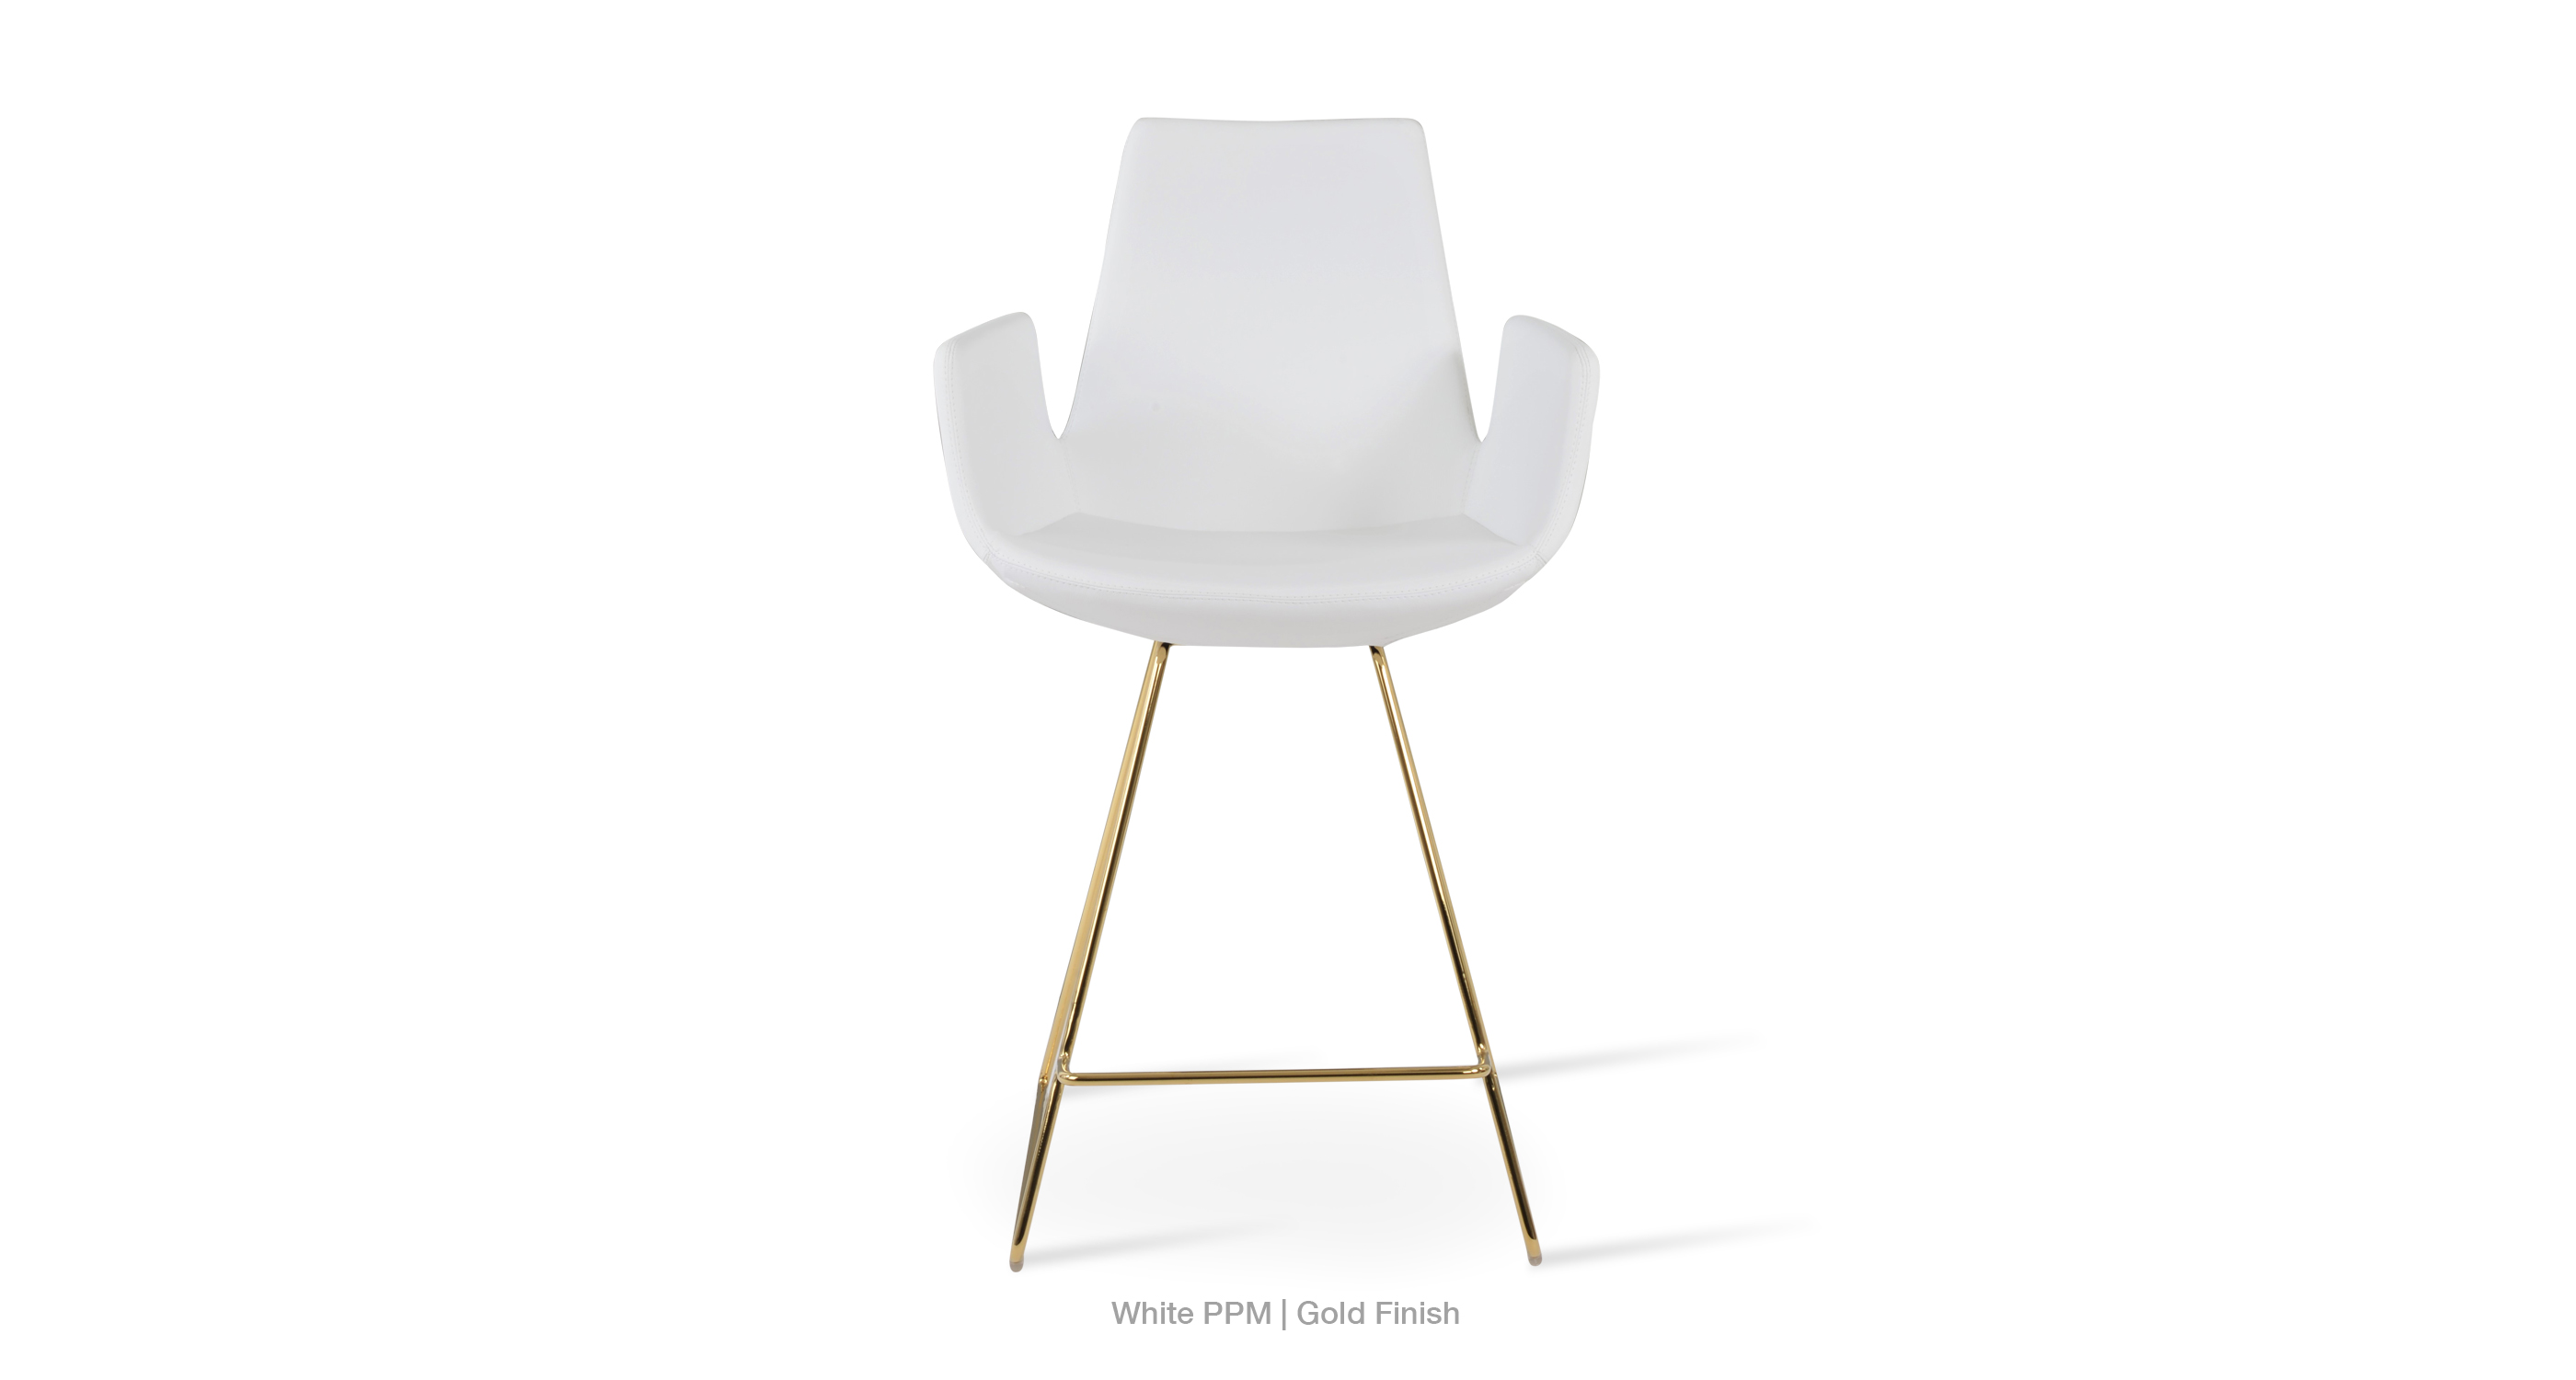 2020 02 23 Eiffel Arm Wire Stool White Ppm Gold